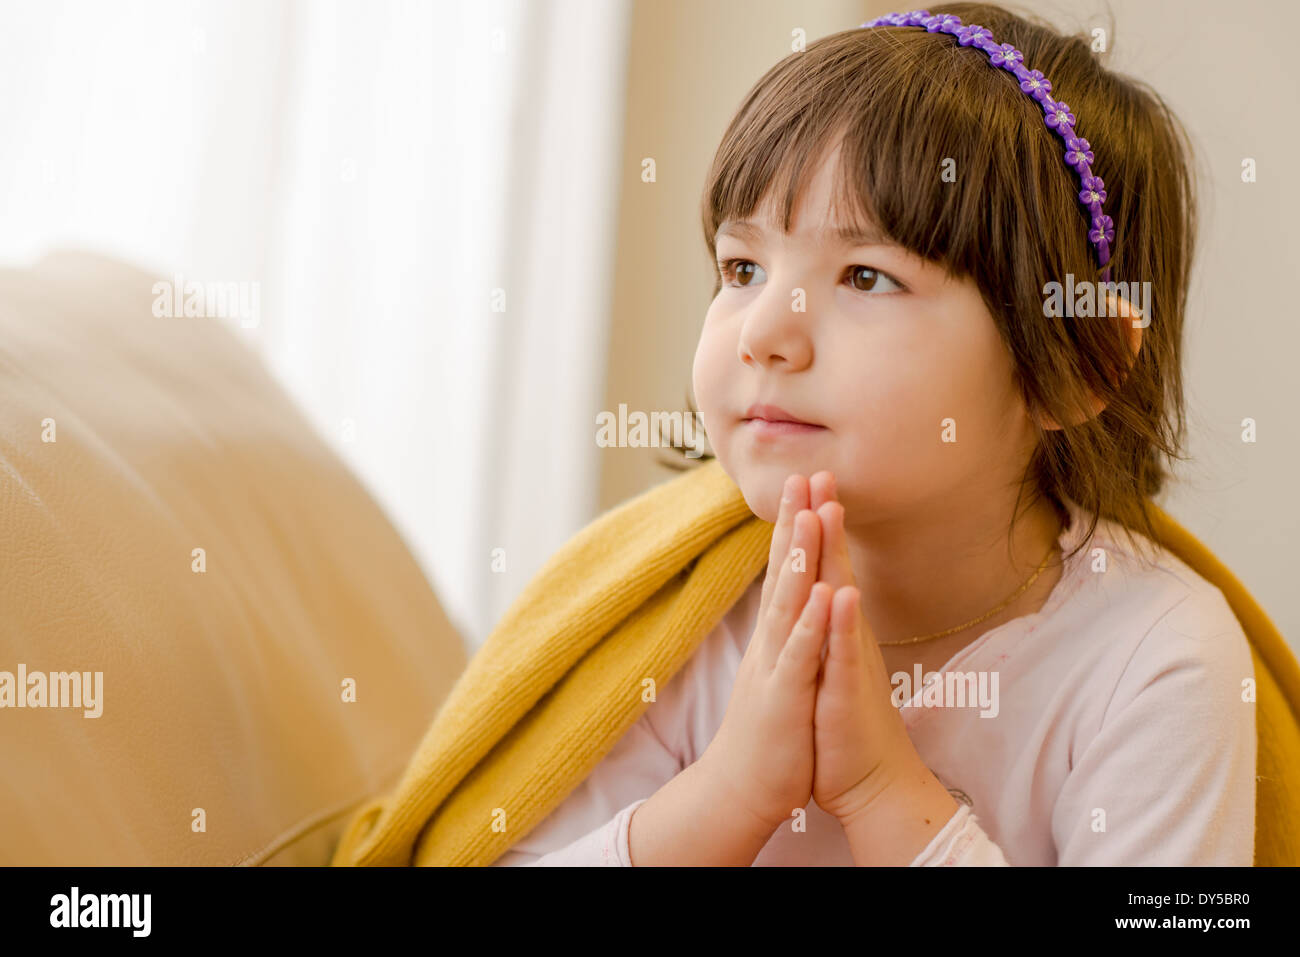 Young girl sitting on sofa daydreaming - Stock Image